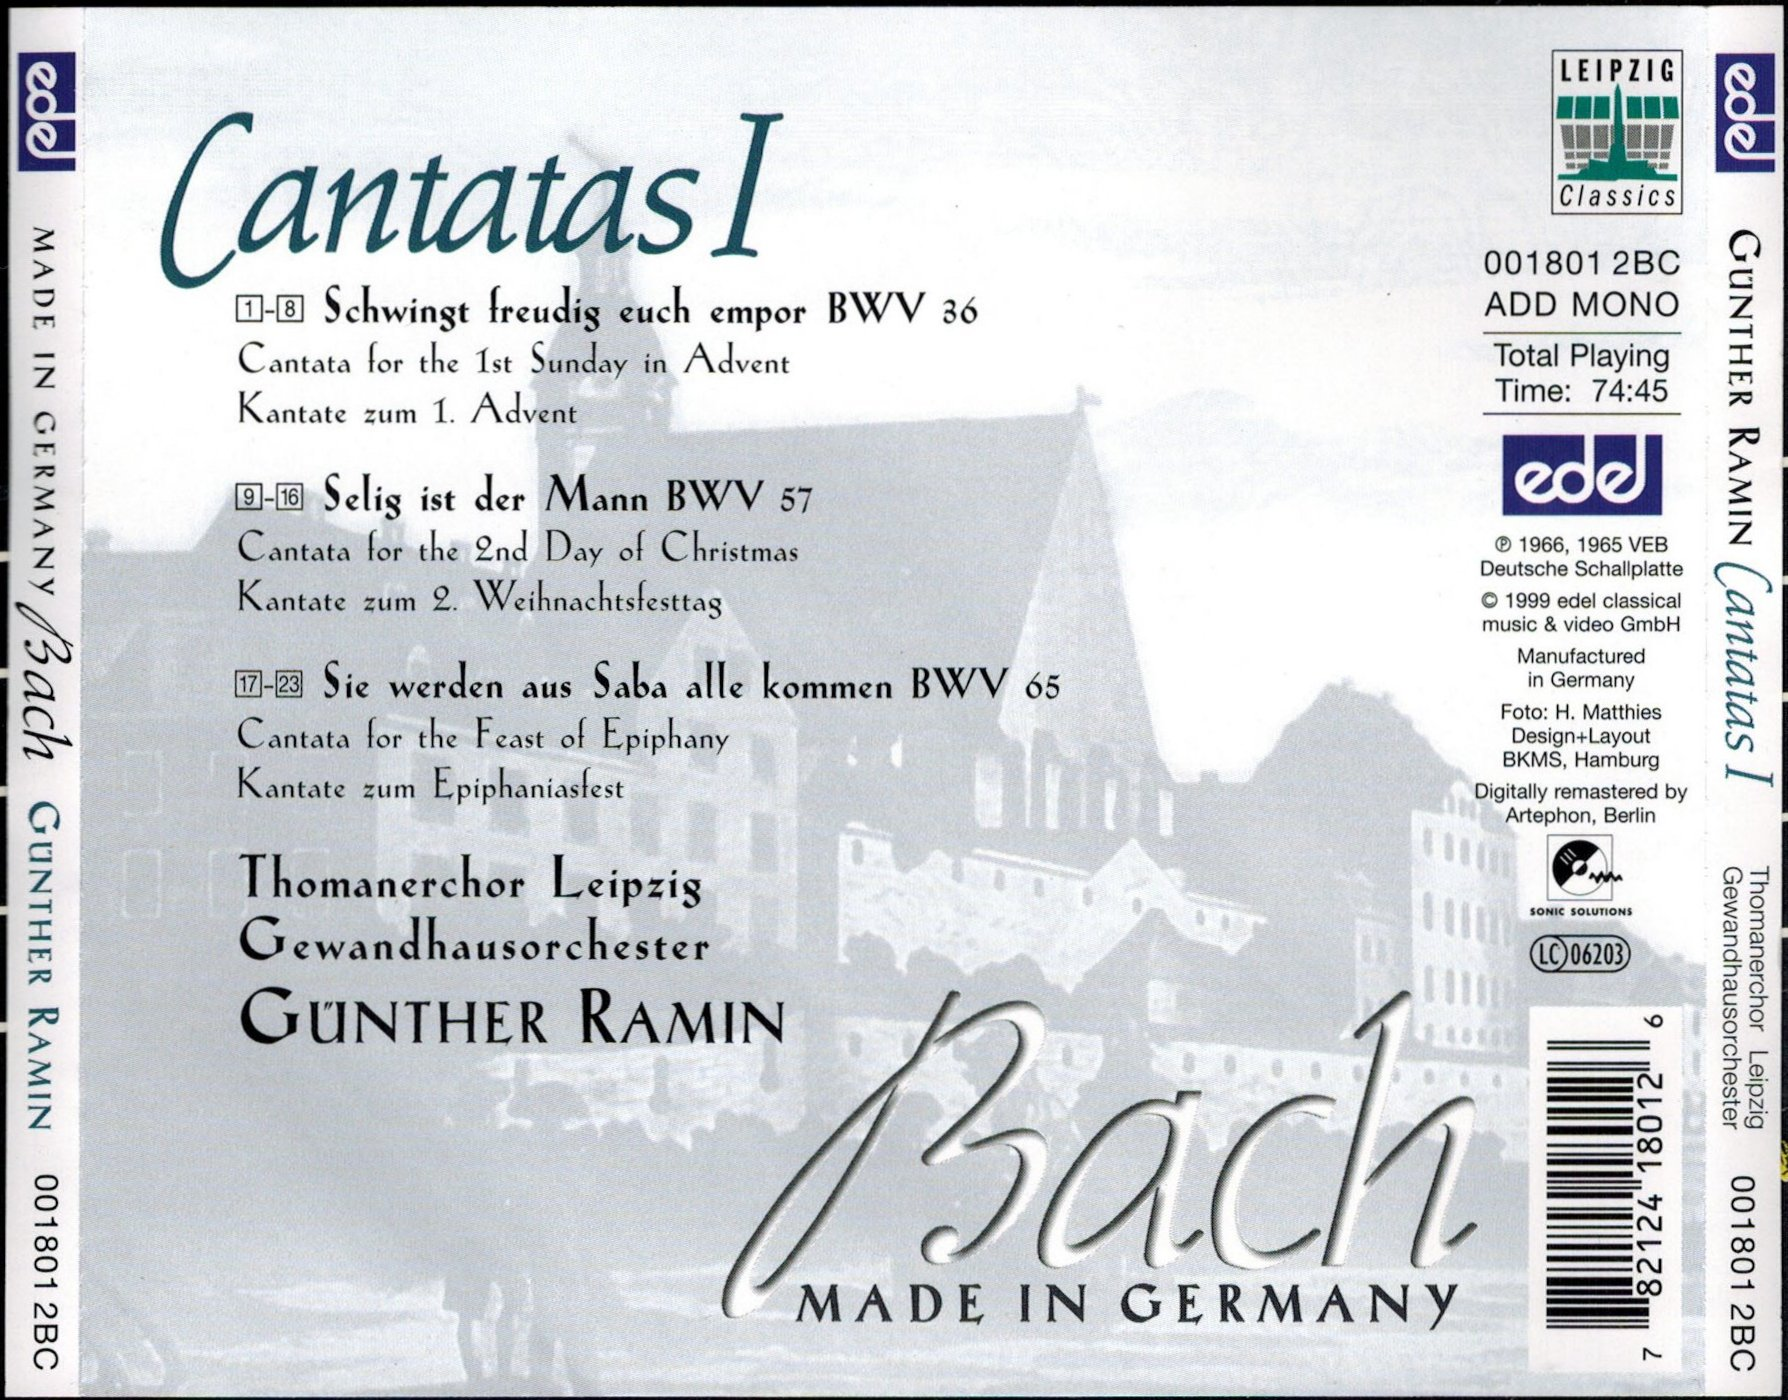 Anette Michel H cantata bwv 57 - details & discography part 1: complete